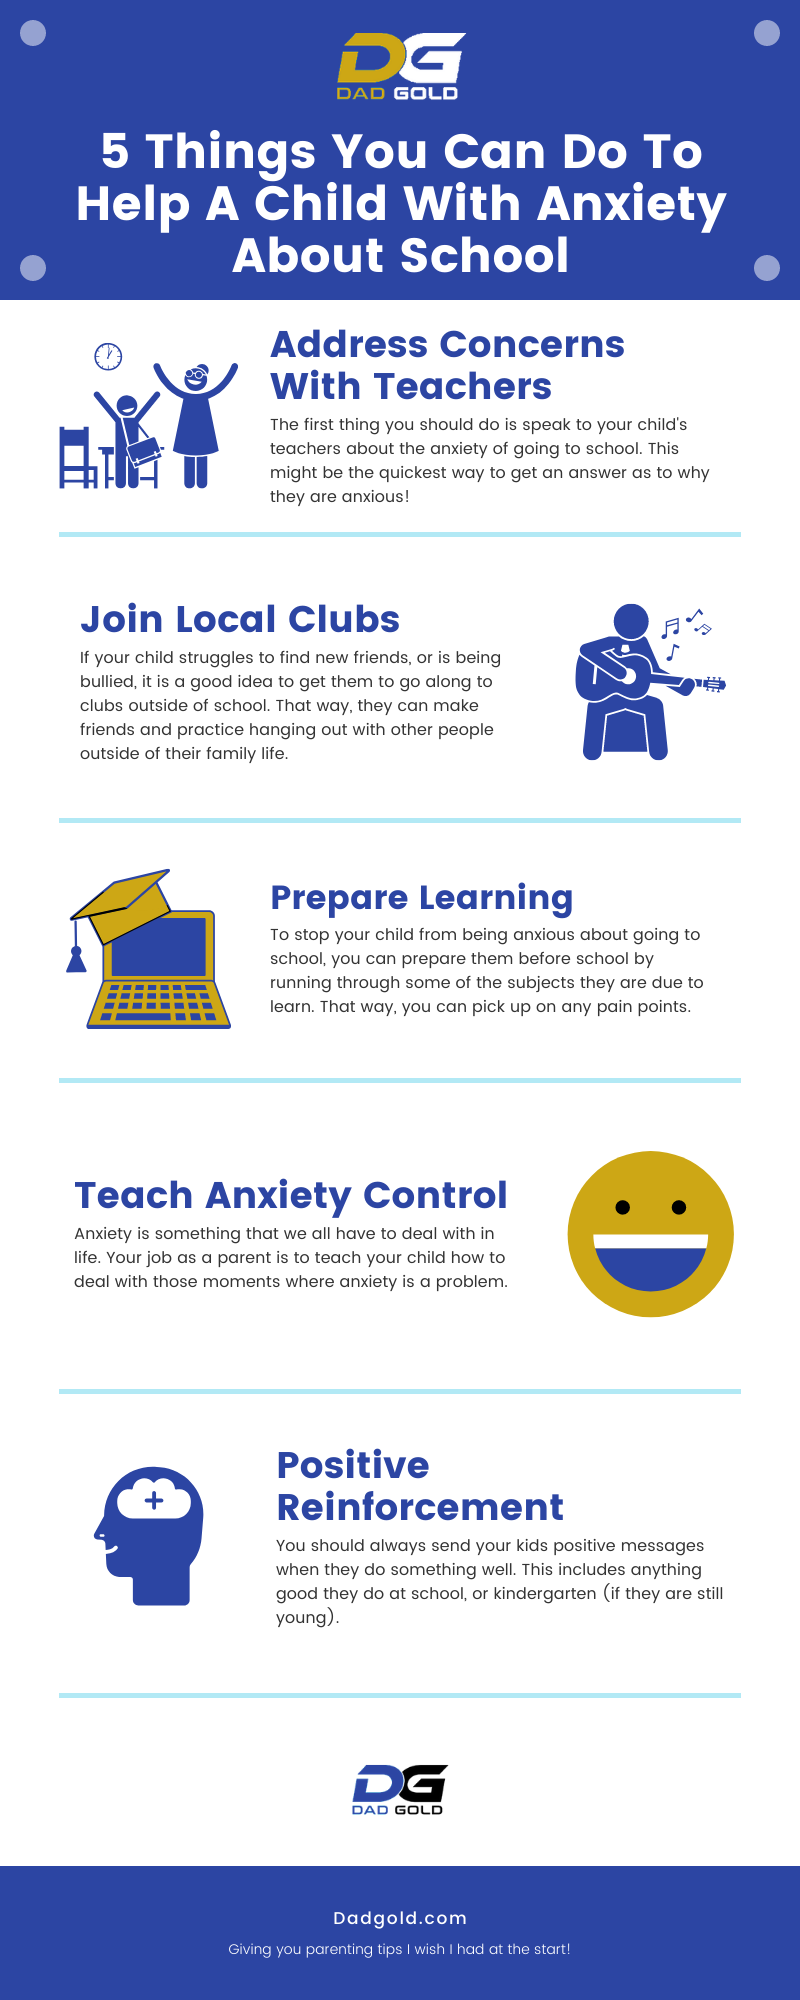 5 Things You Can Do To Help A Child With Anxiety About School Infographic